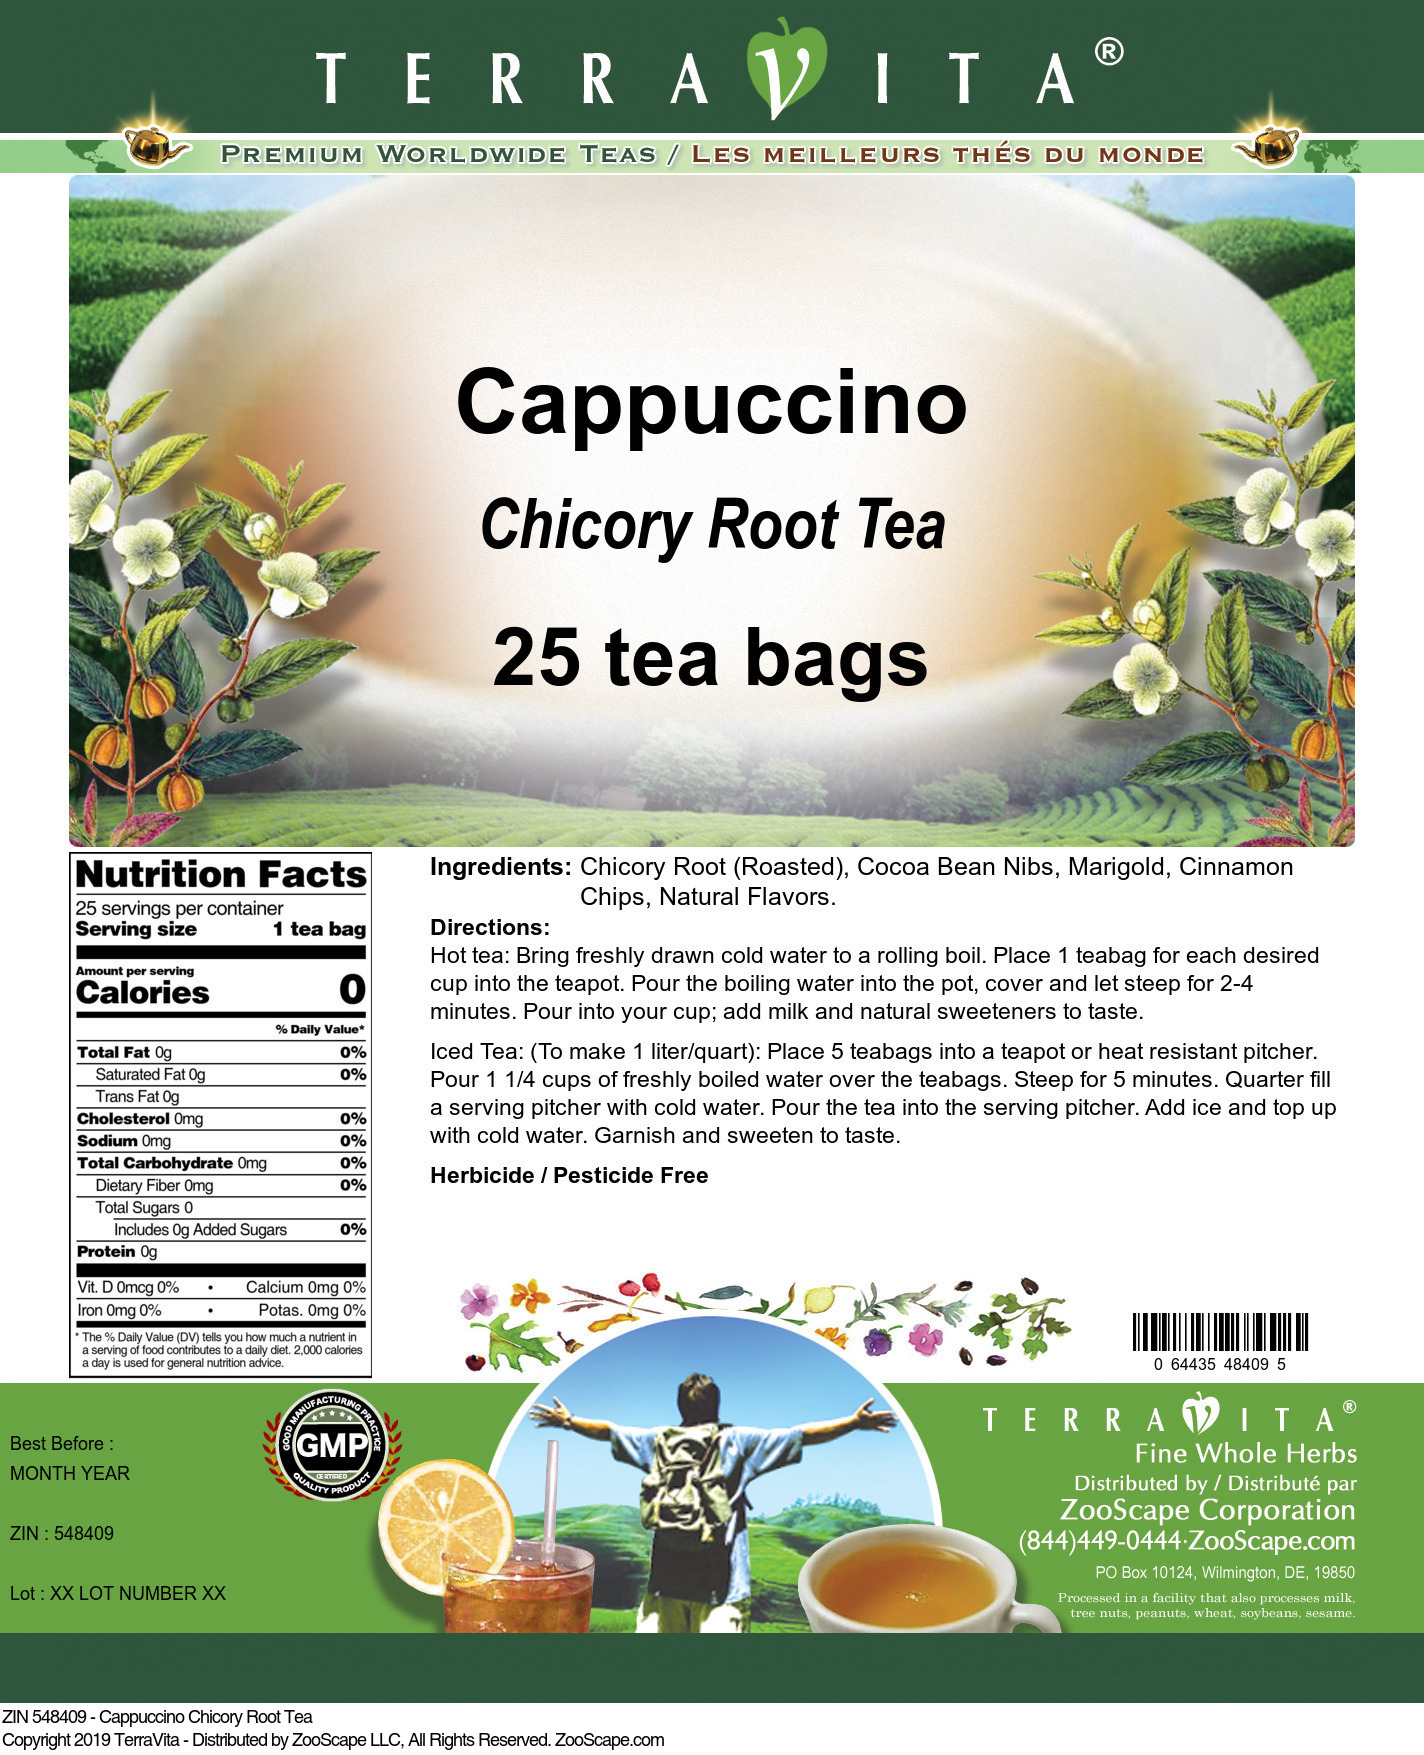 Cappuccino Chicory Root